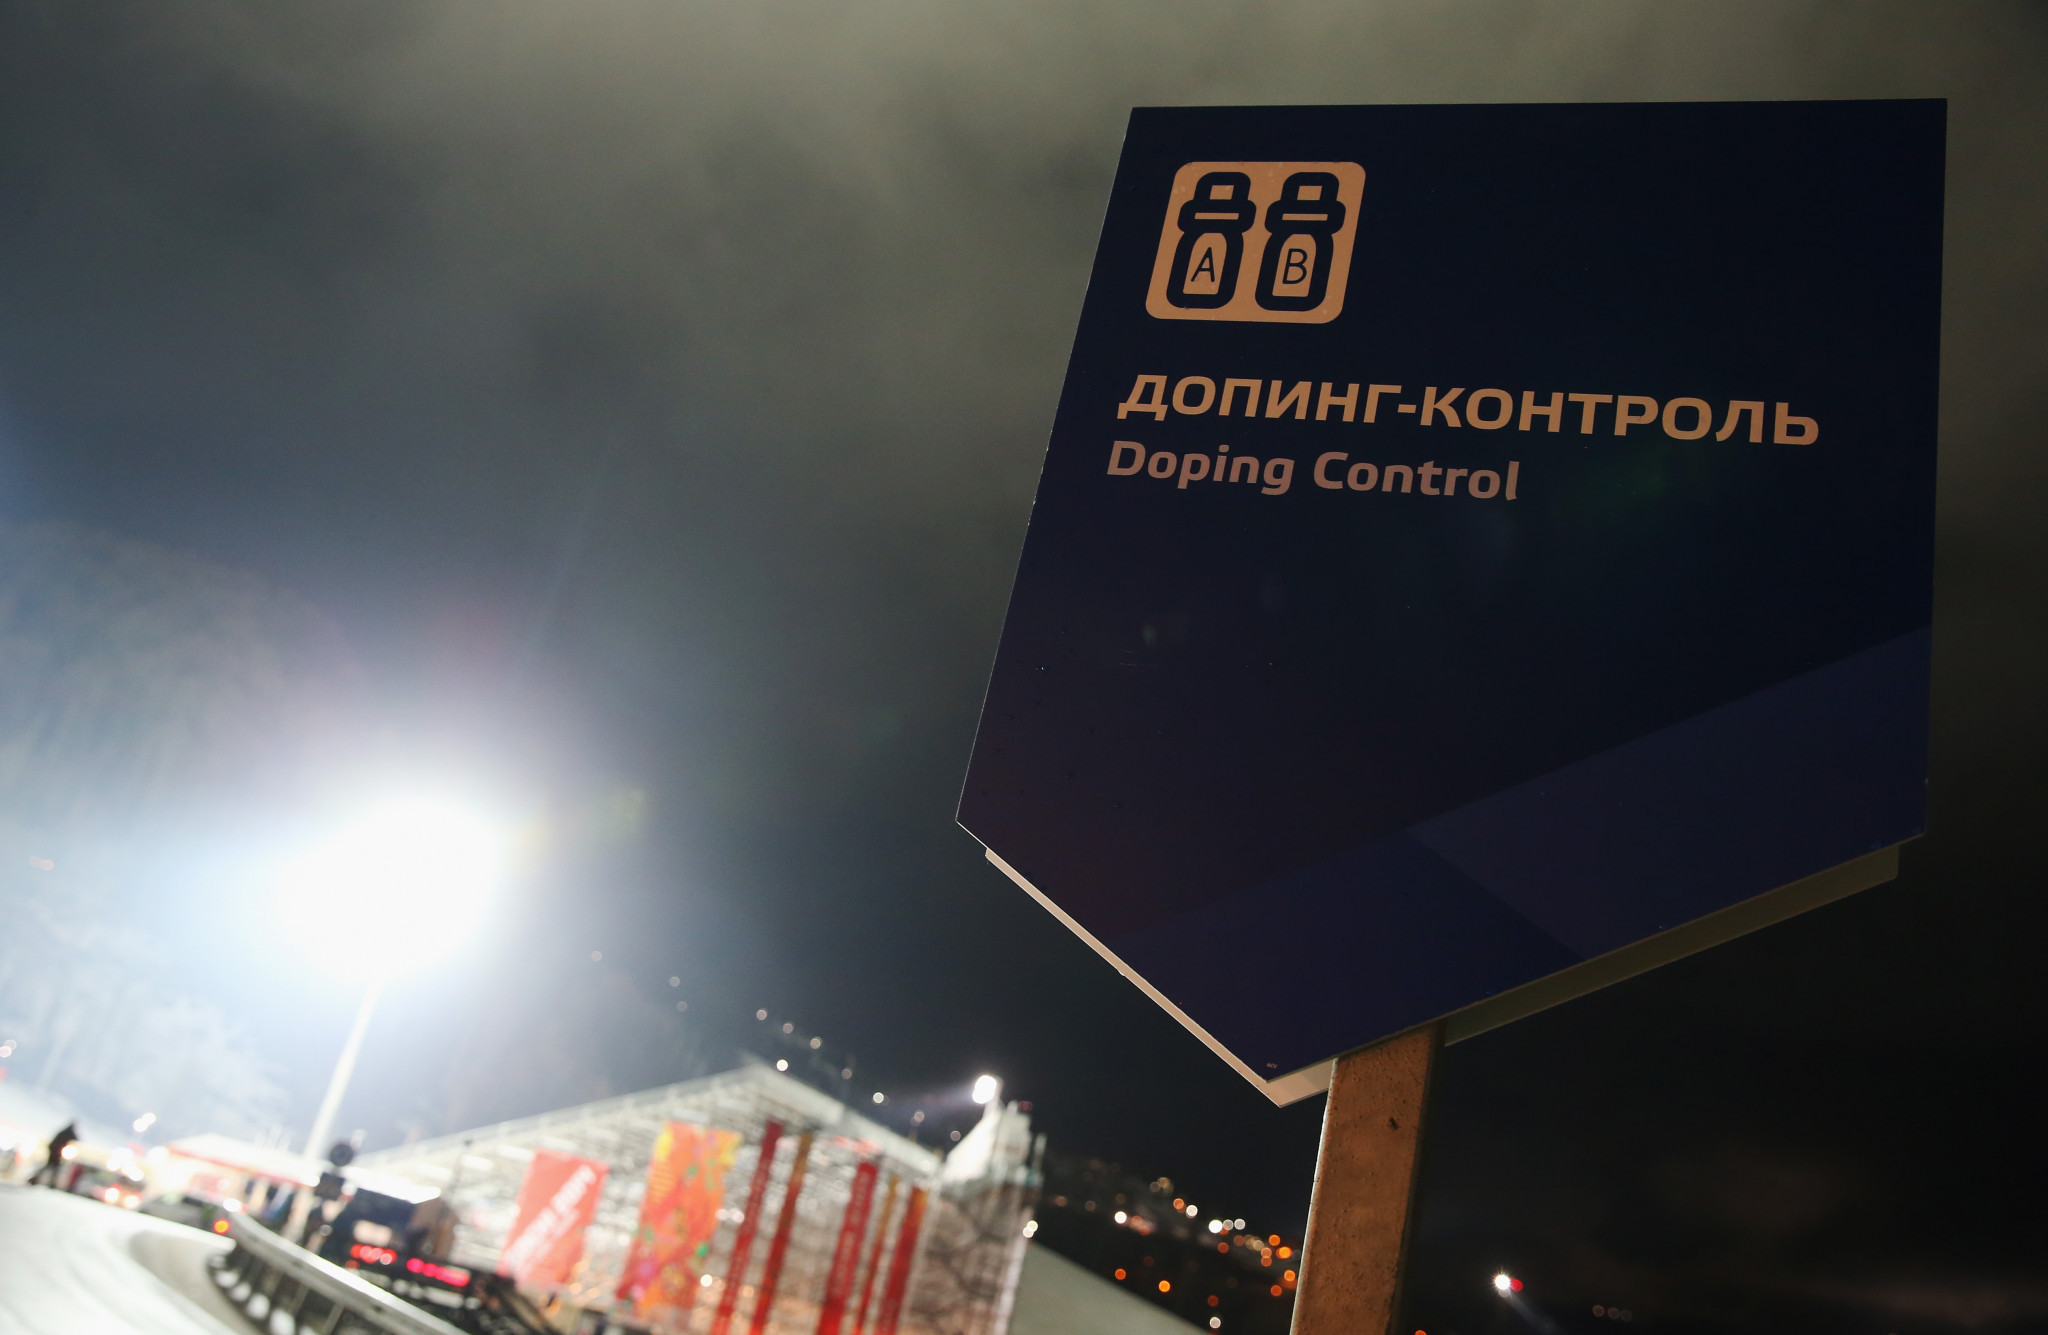 ITA to begin further reanalysis of samples from Sochi 2014 Winter Olympics